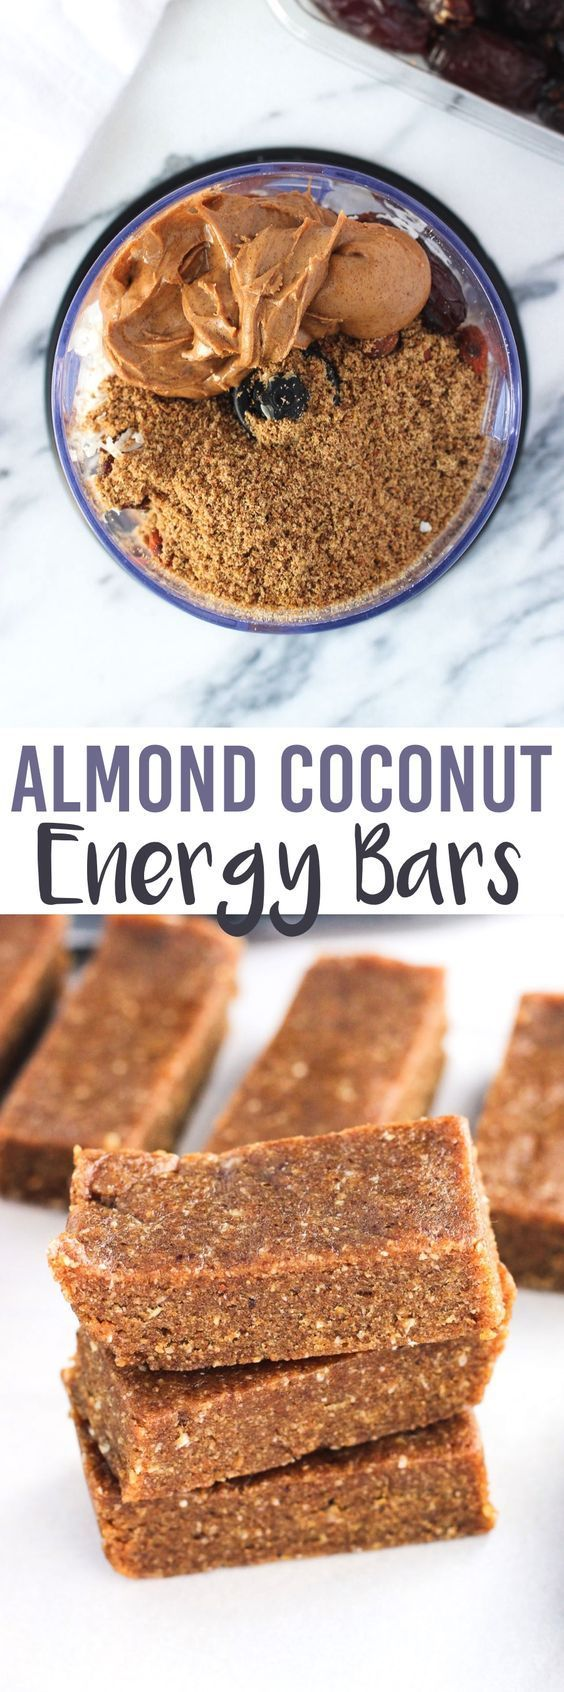 These five-ingredient Almond Coconut Energy Bars are dense and chewy with a consistency like a Larabar. Great almond and coconut flavor and vegan. Only a few ingredients are used and they are all clean eating approved! Pin this healthy snack recipe for later!